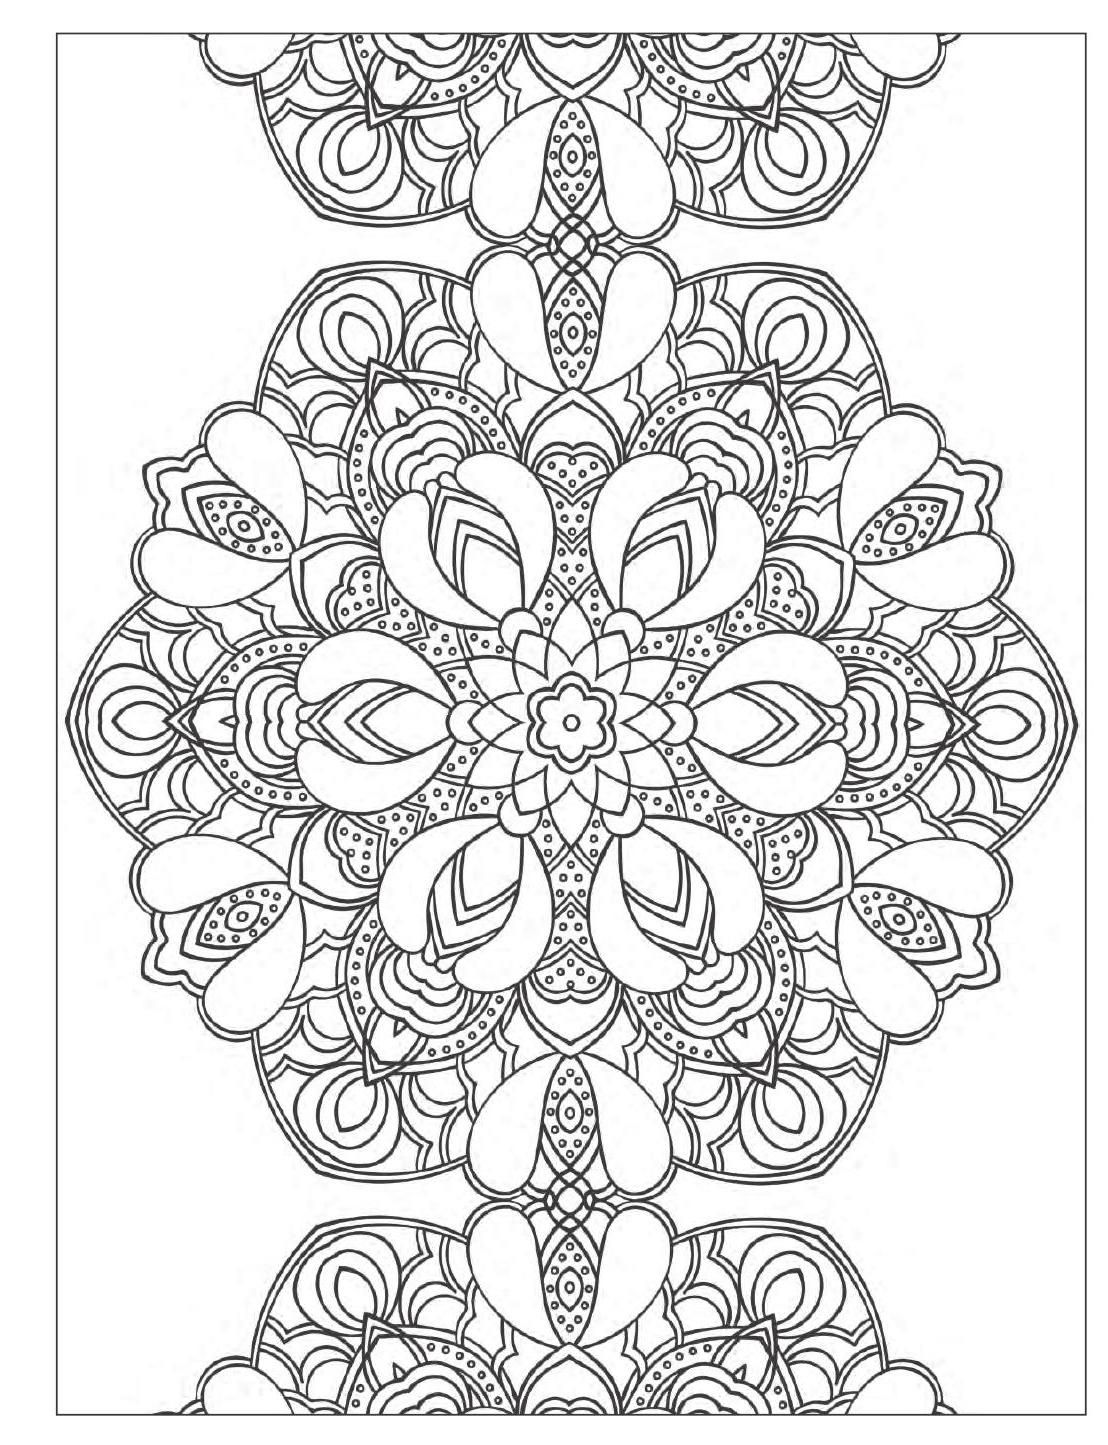 1108x1445 Yoga Meditation Coloring Book For Adults With Yoga Poses